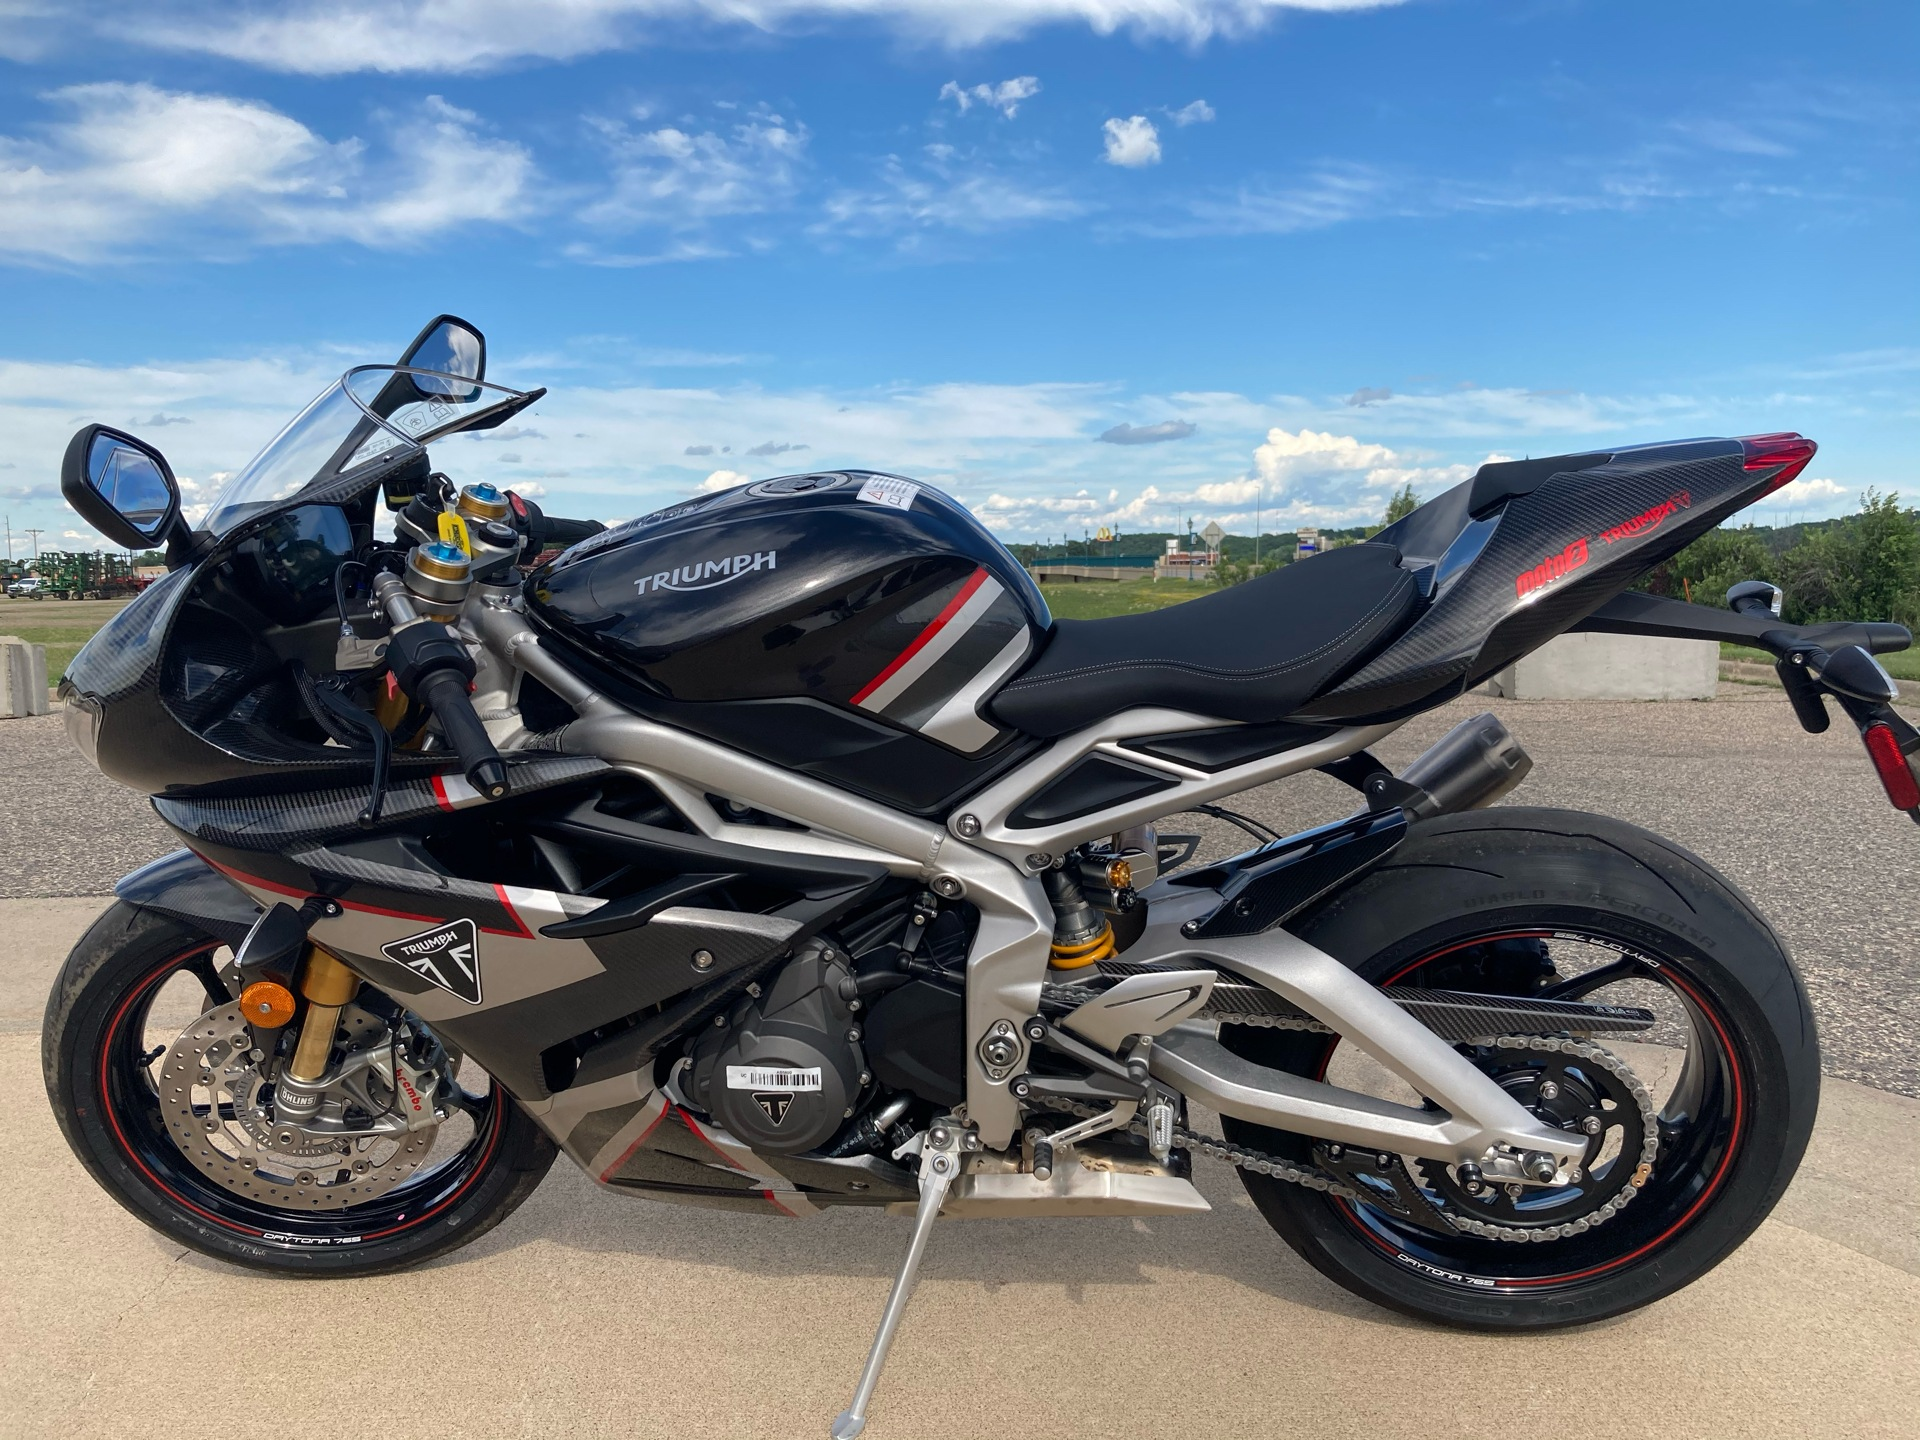 2020 Triumph Daytona Moto 2 Limited Edition in Belle Plaine, Minnesota - Photo 13